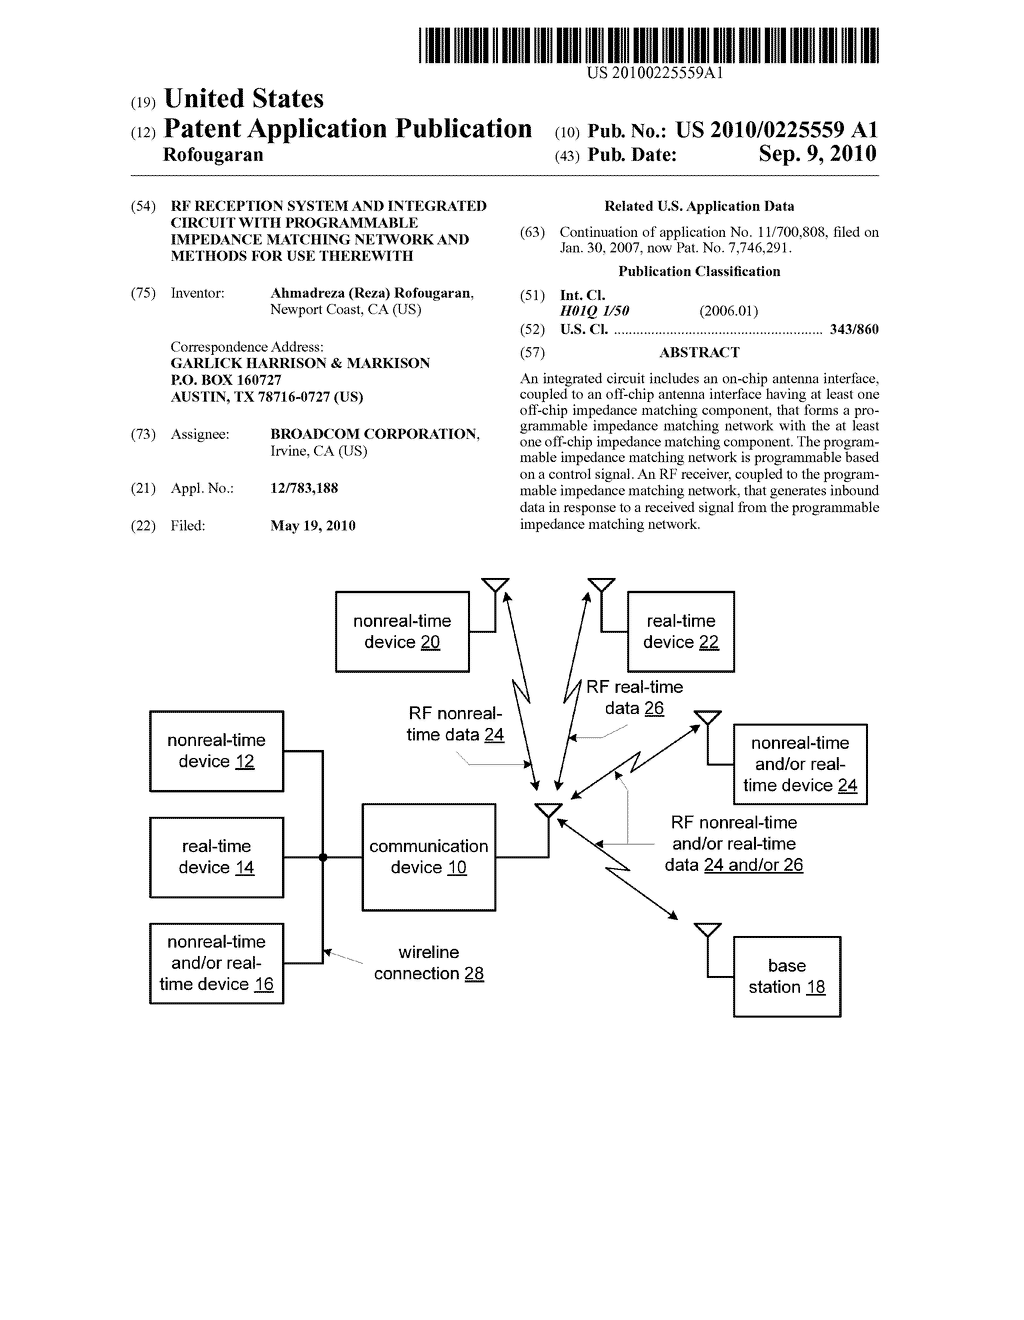 Rf Reception System And Integrated Circuit With Programmable Uses Of Impedance Matching Network Methods For Use Therewith Diagram Schematic Image 01